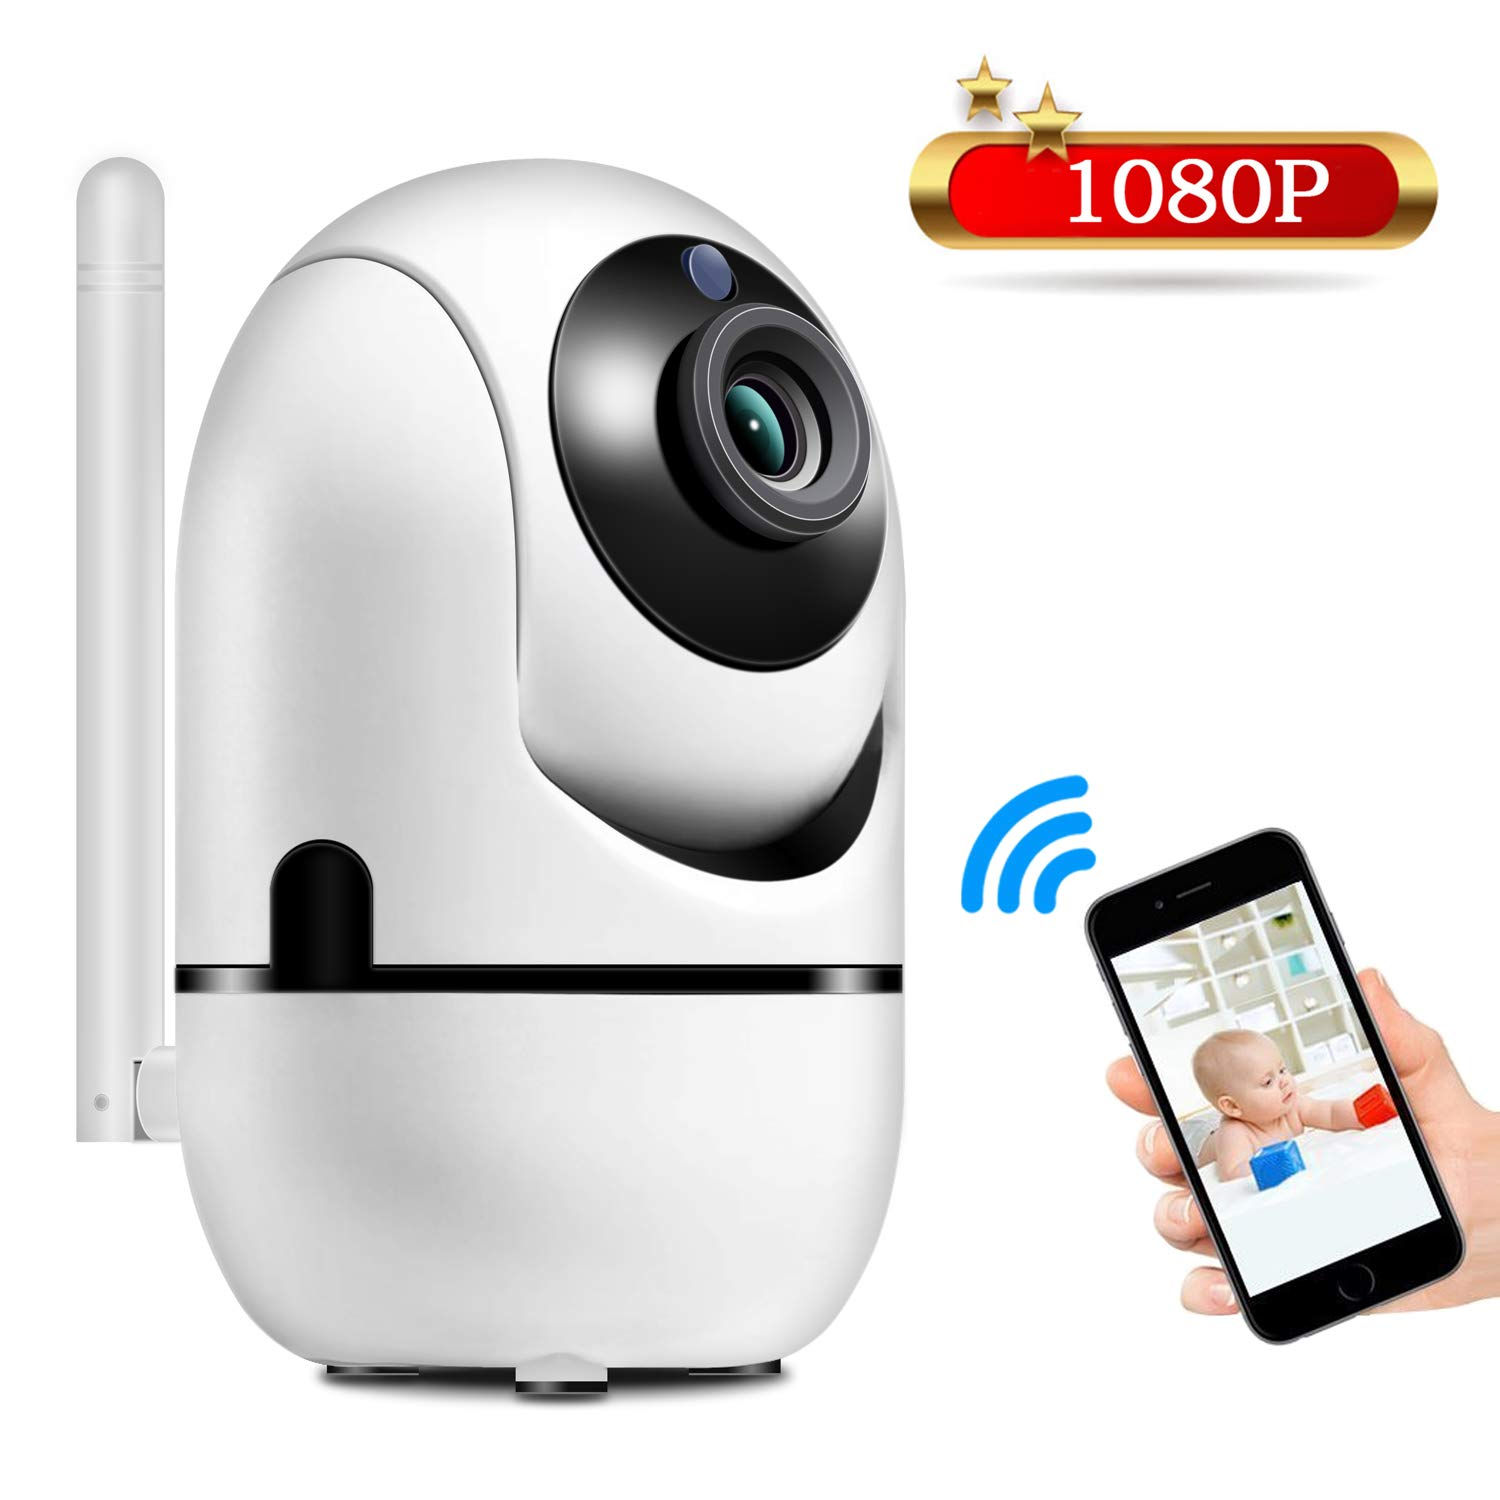 1080P Baby Monitor, JIMAMA Automatic Motion Detect WiFi Camera High Clear Audio Pet Monitor with Camera Indoor Security Surveillance System Night Vision 360 Degree Controlled by iPh0ne and Android